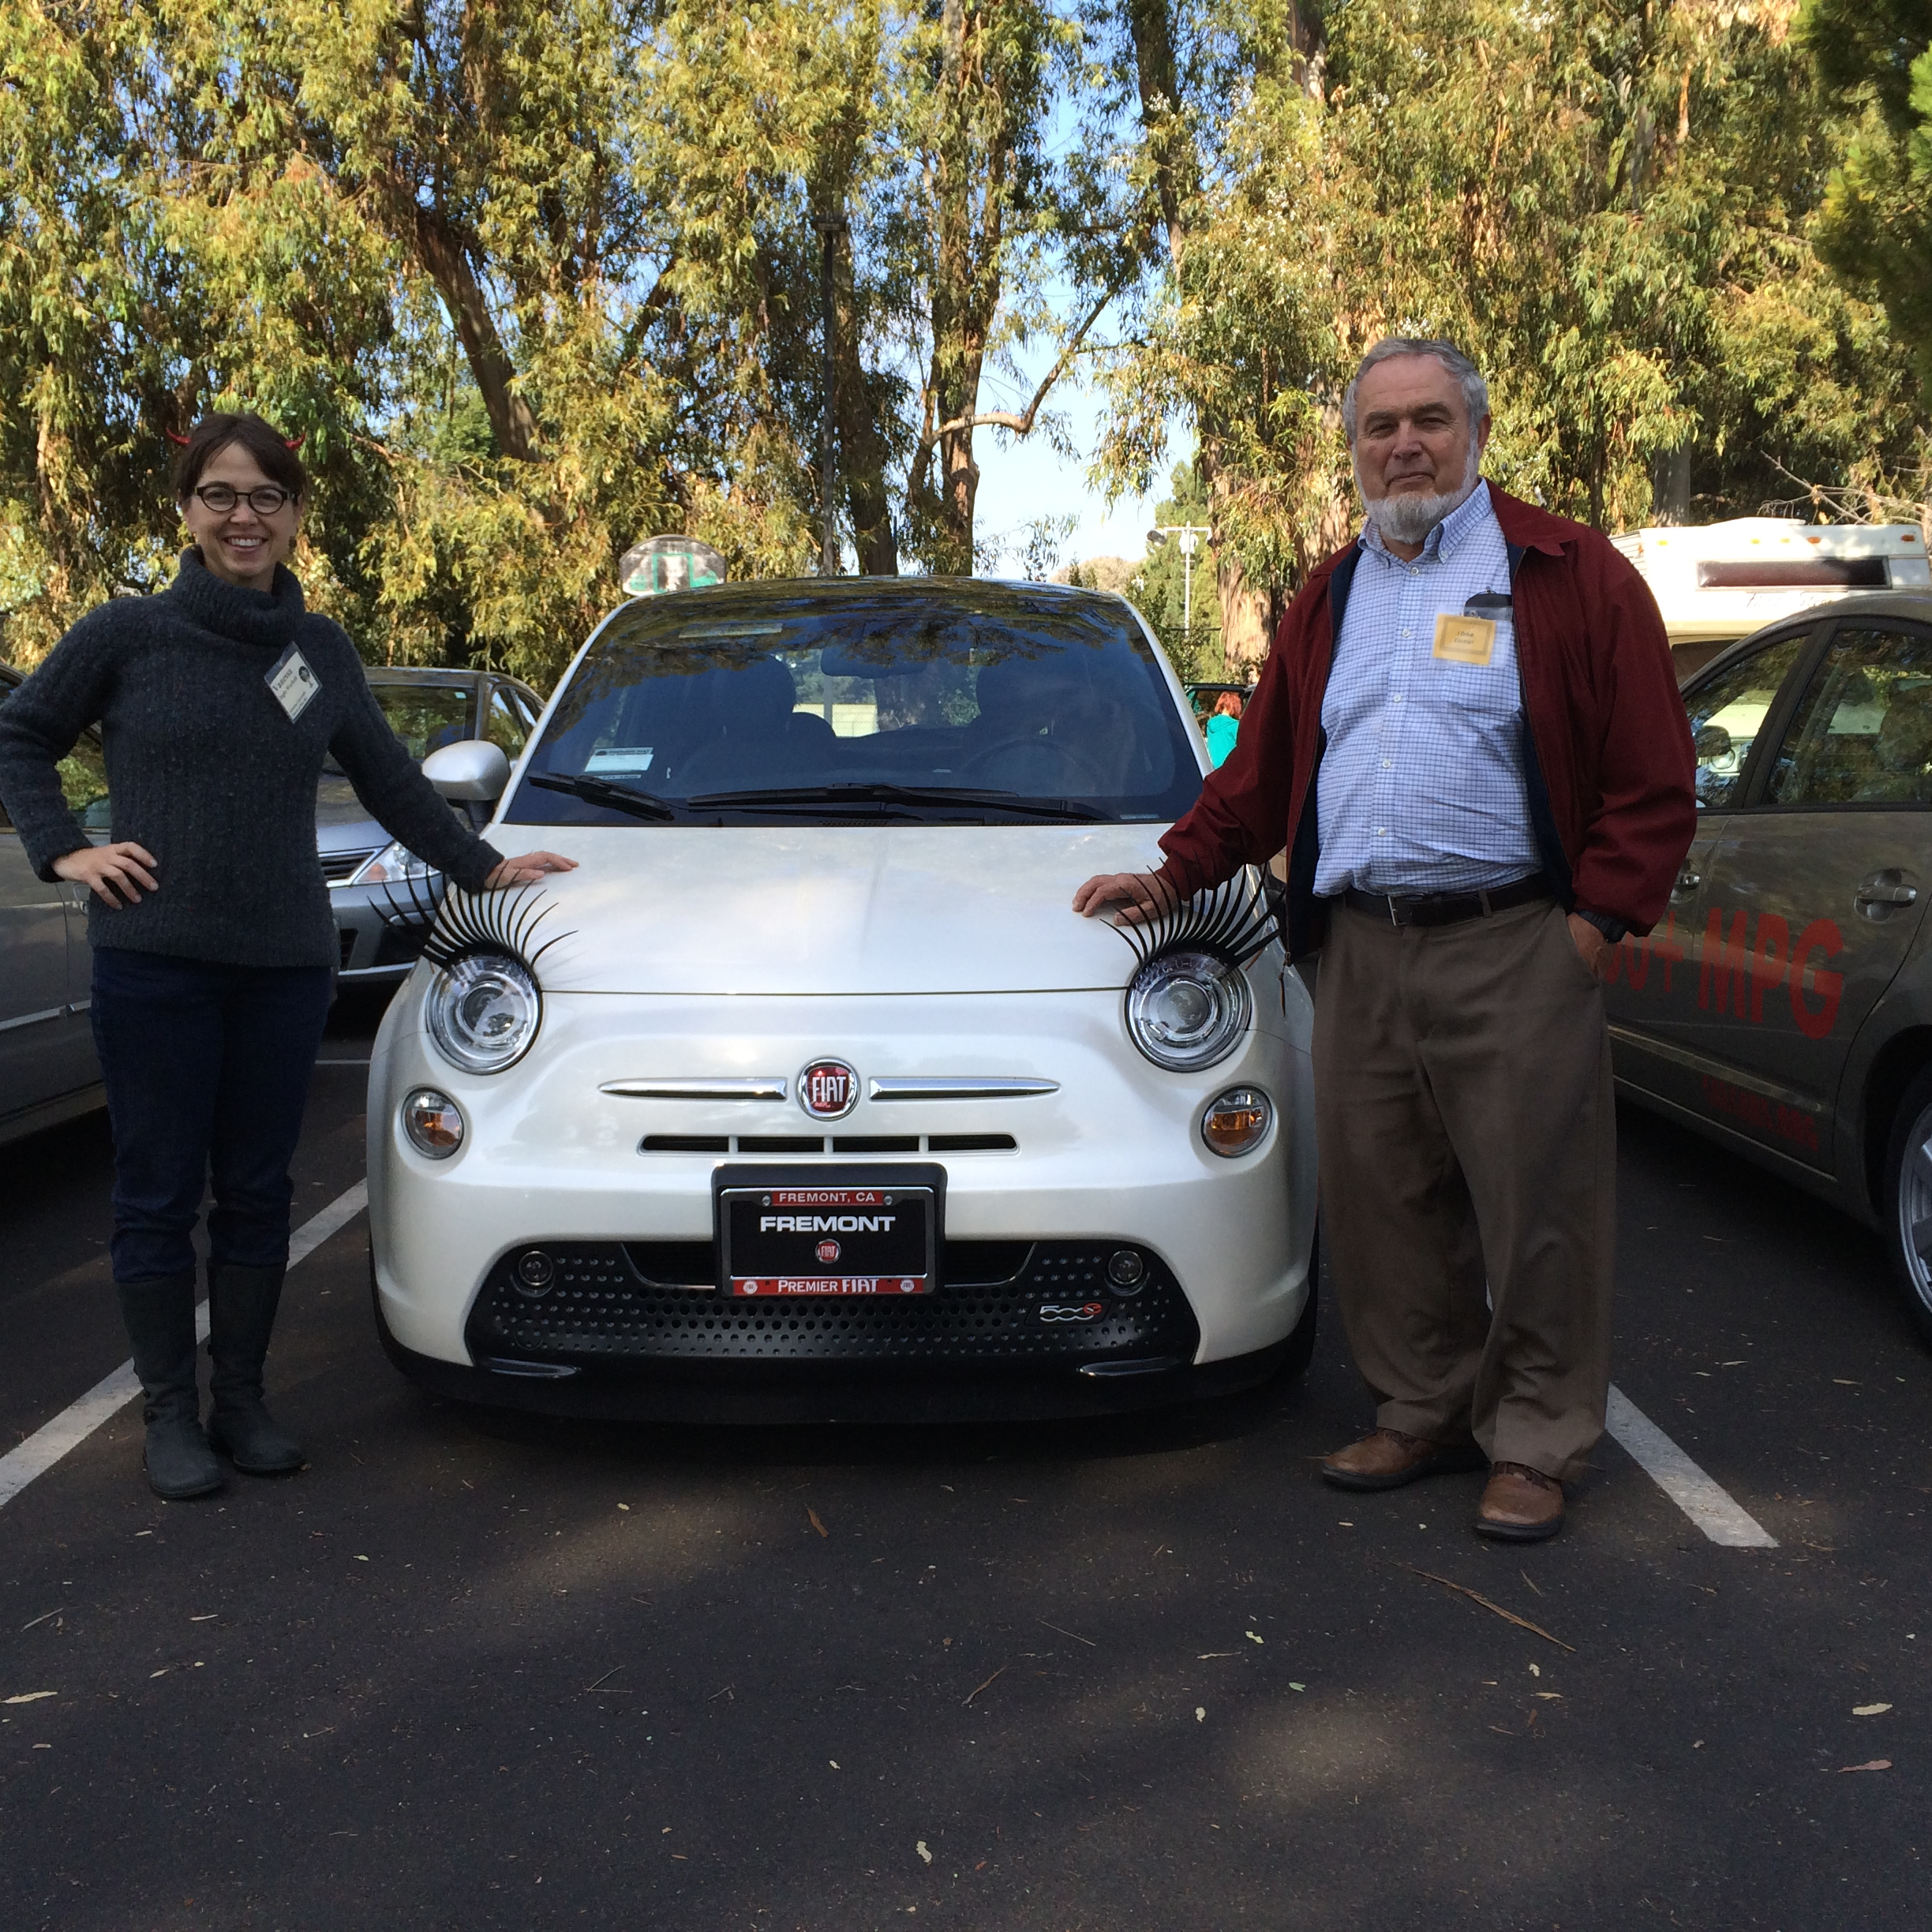 Vanessa with Richard and his brand-new all-electric Fiat 500e (photo by Elliot)